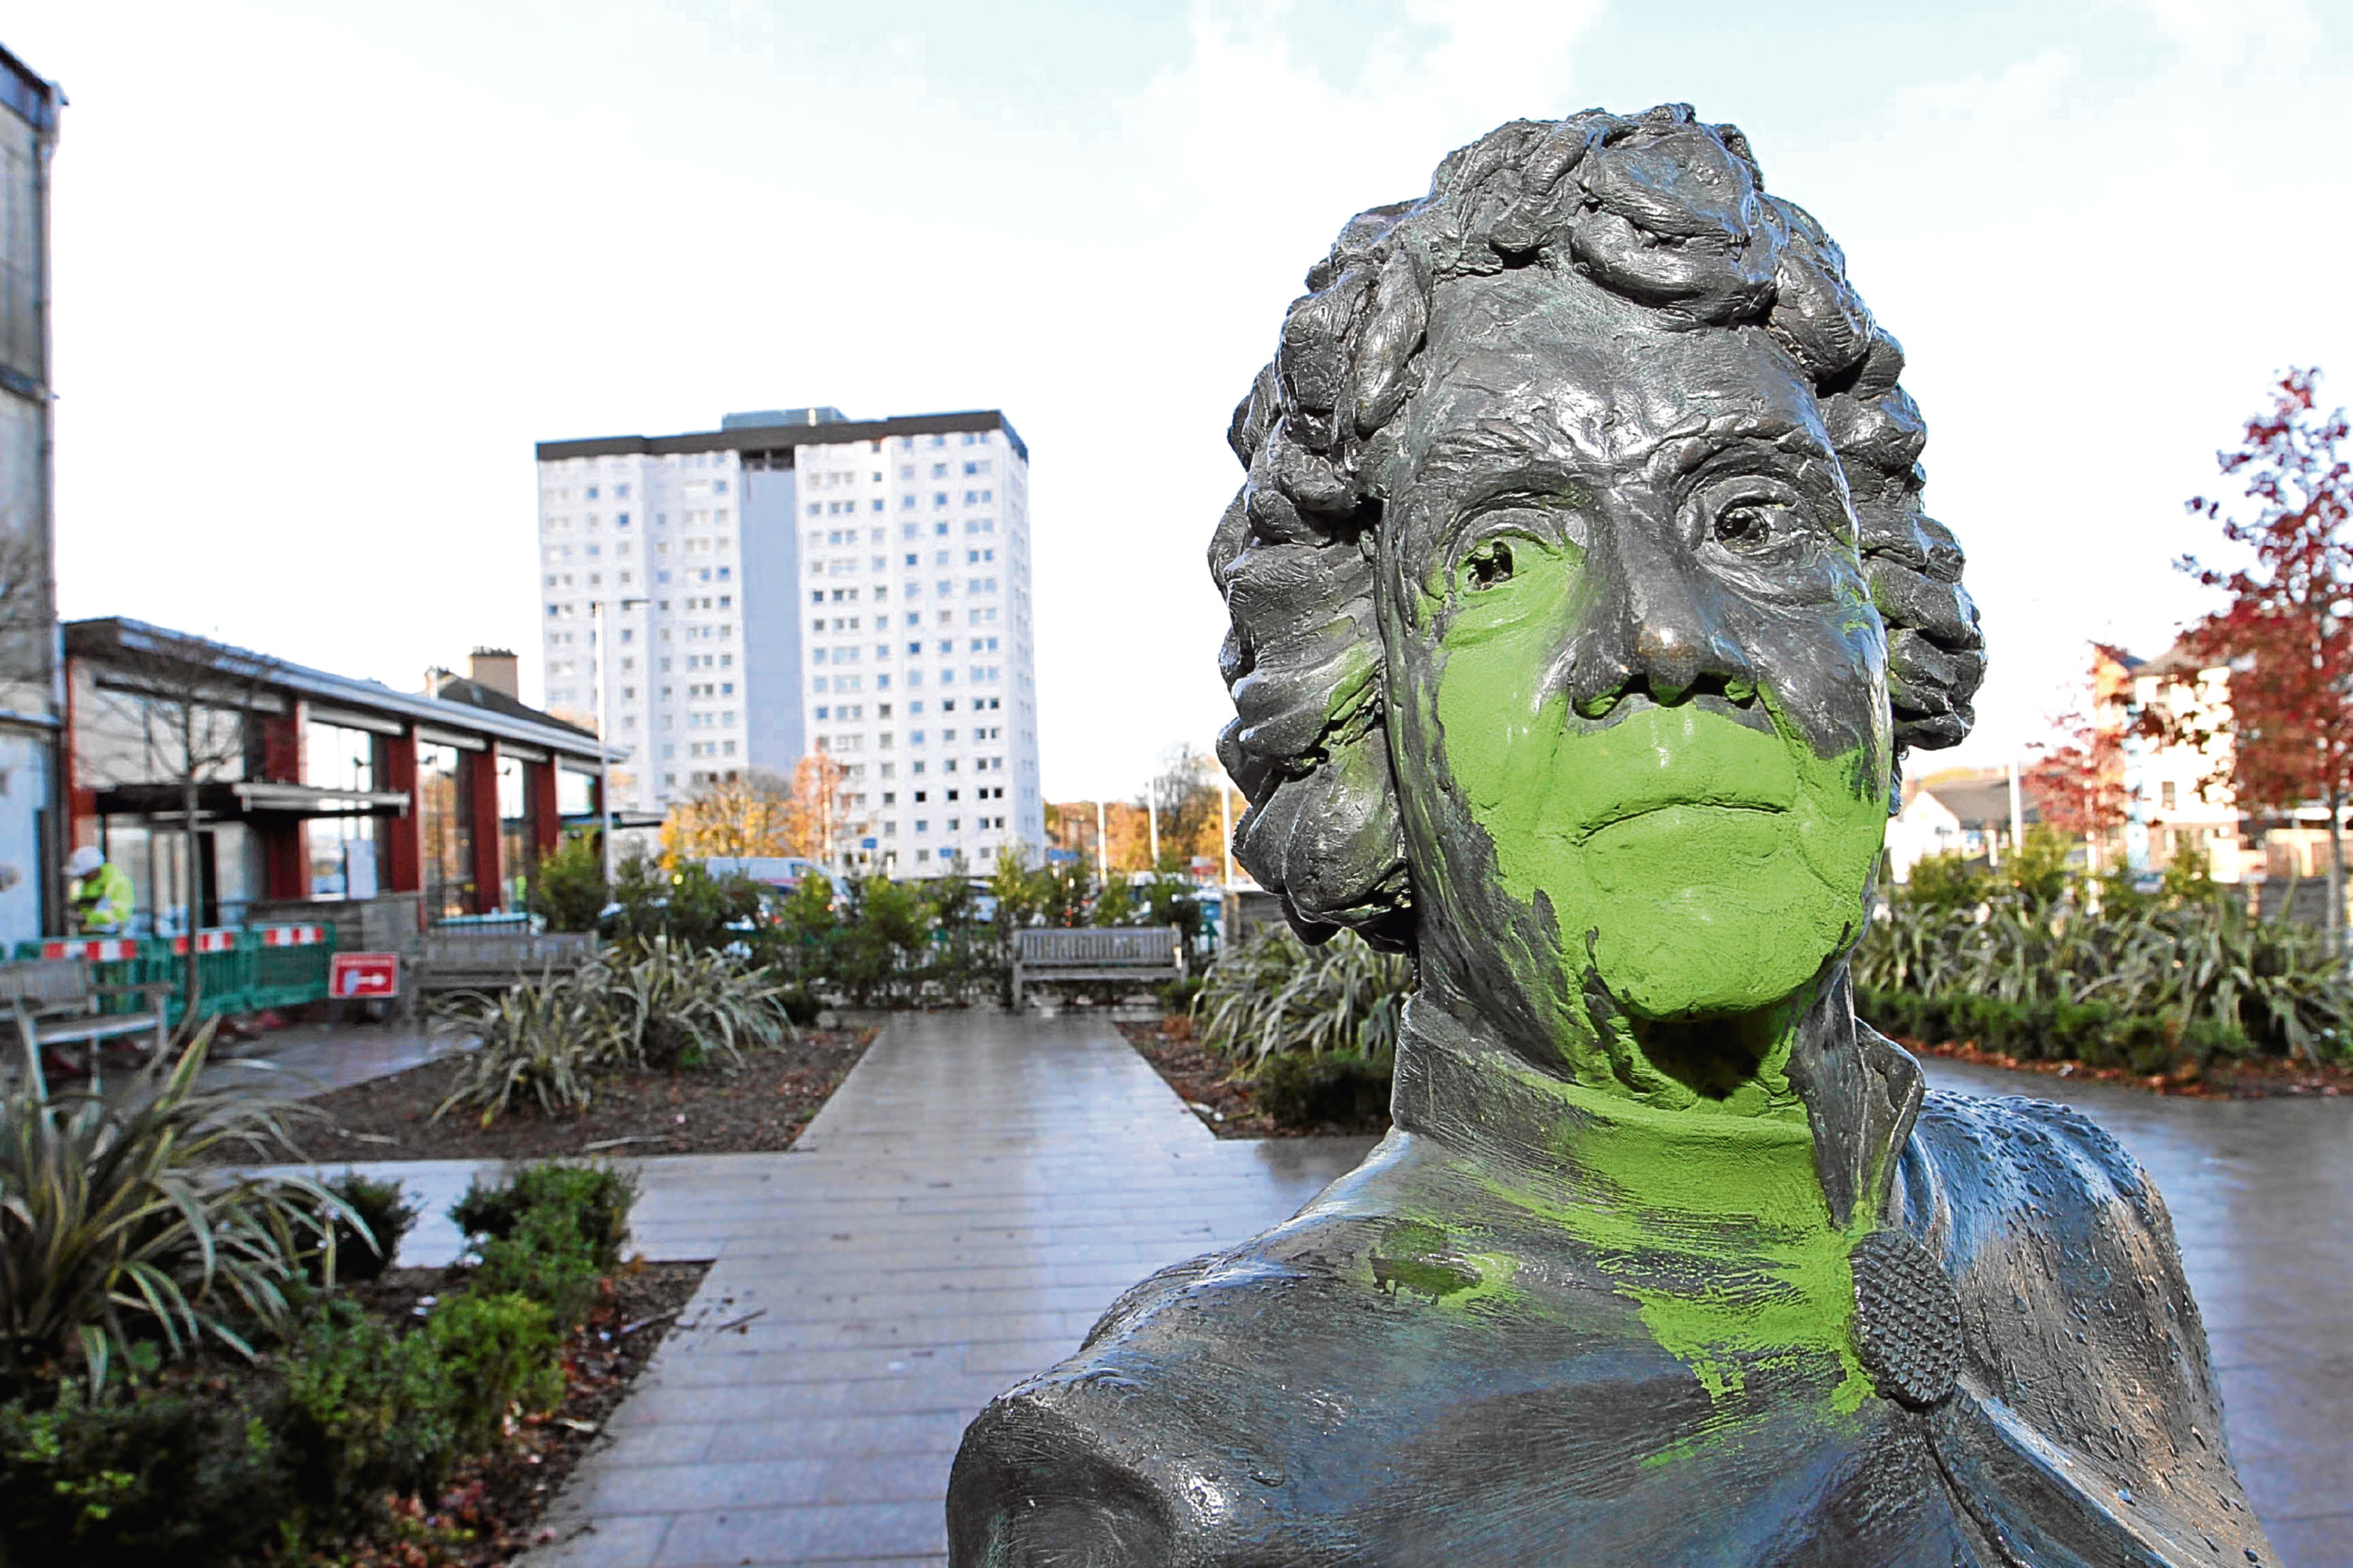 A statue in Lochee has been vandalised with green paint.